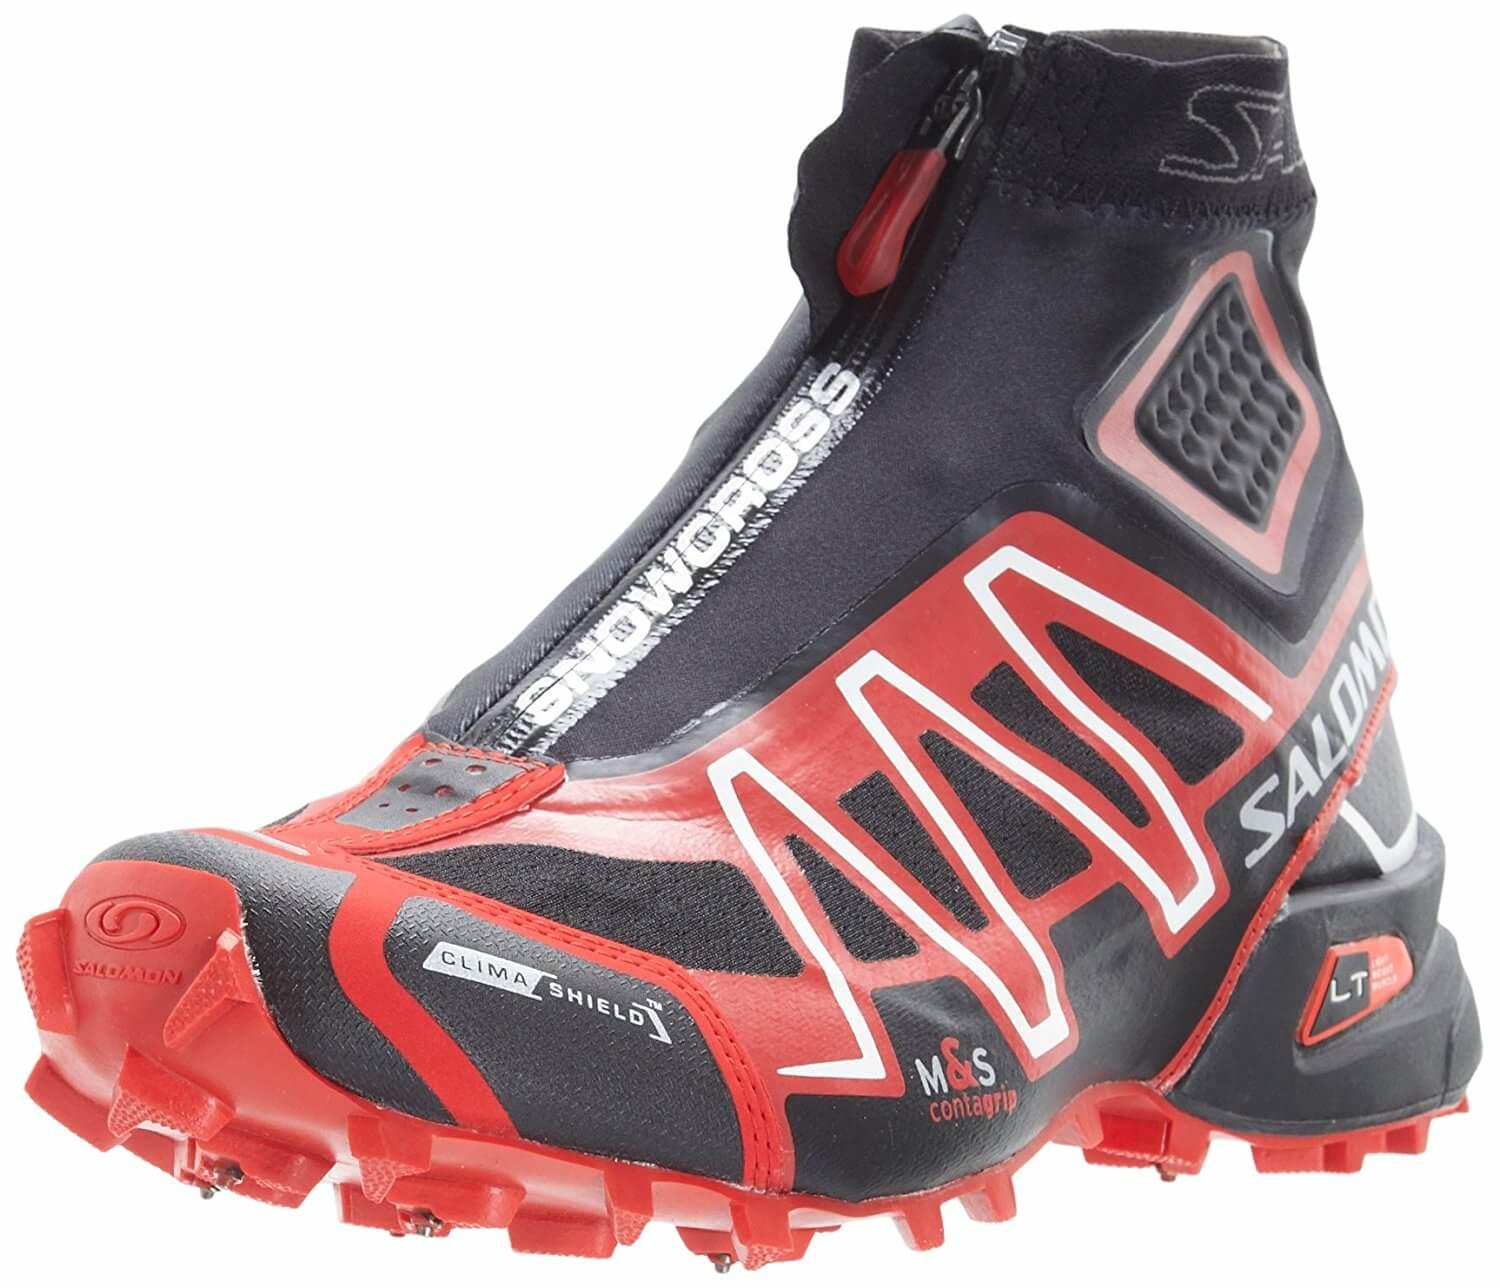 Salomon Snowcross CS Fully Reviewed for Quality 1